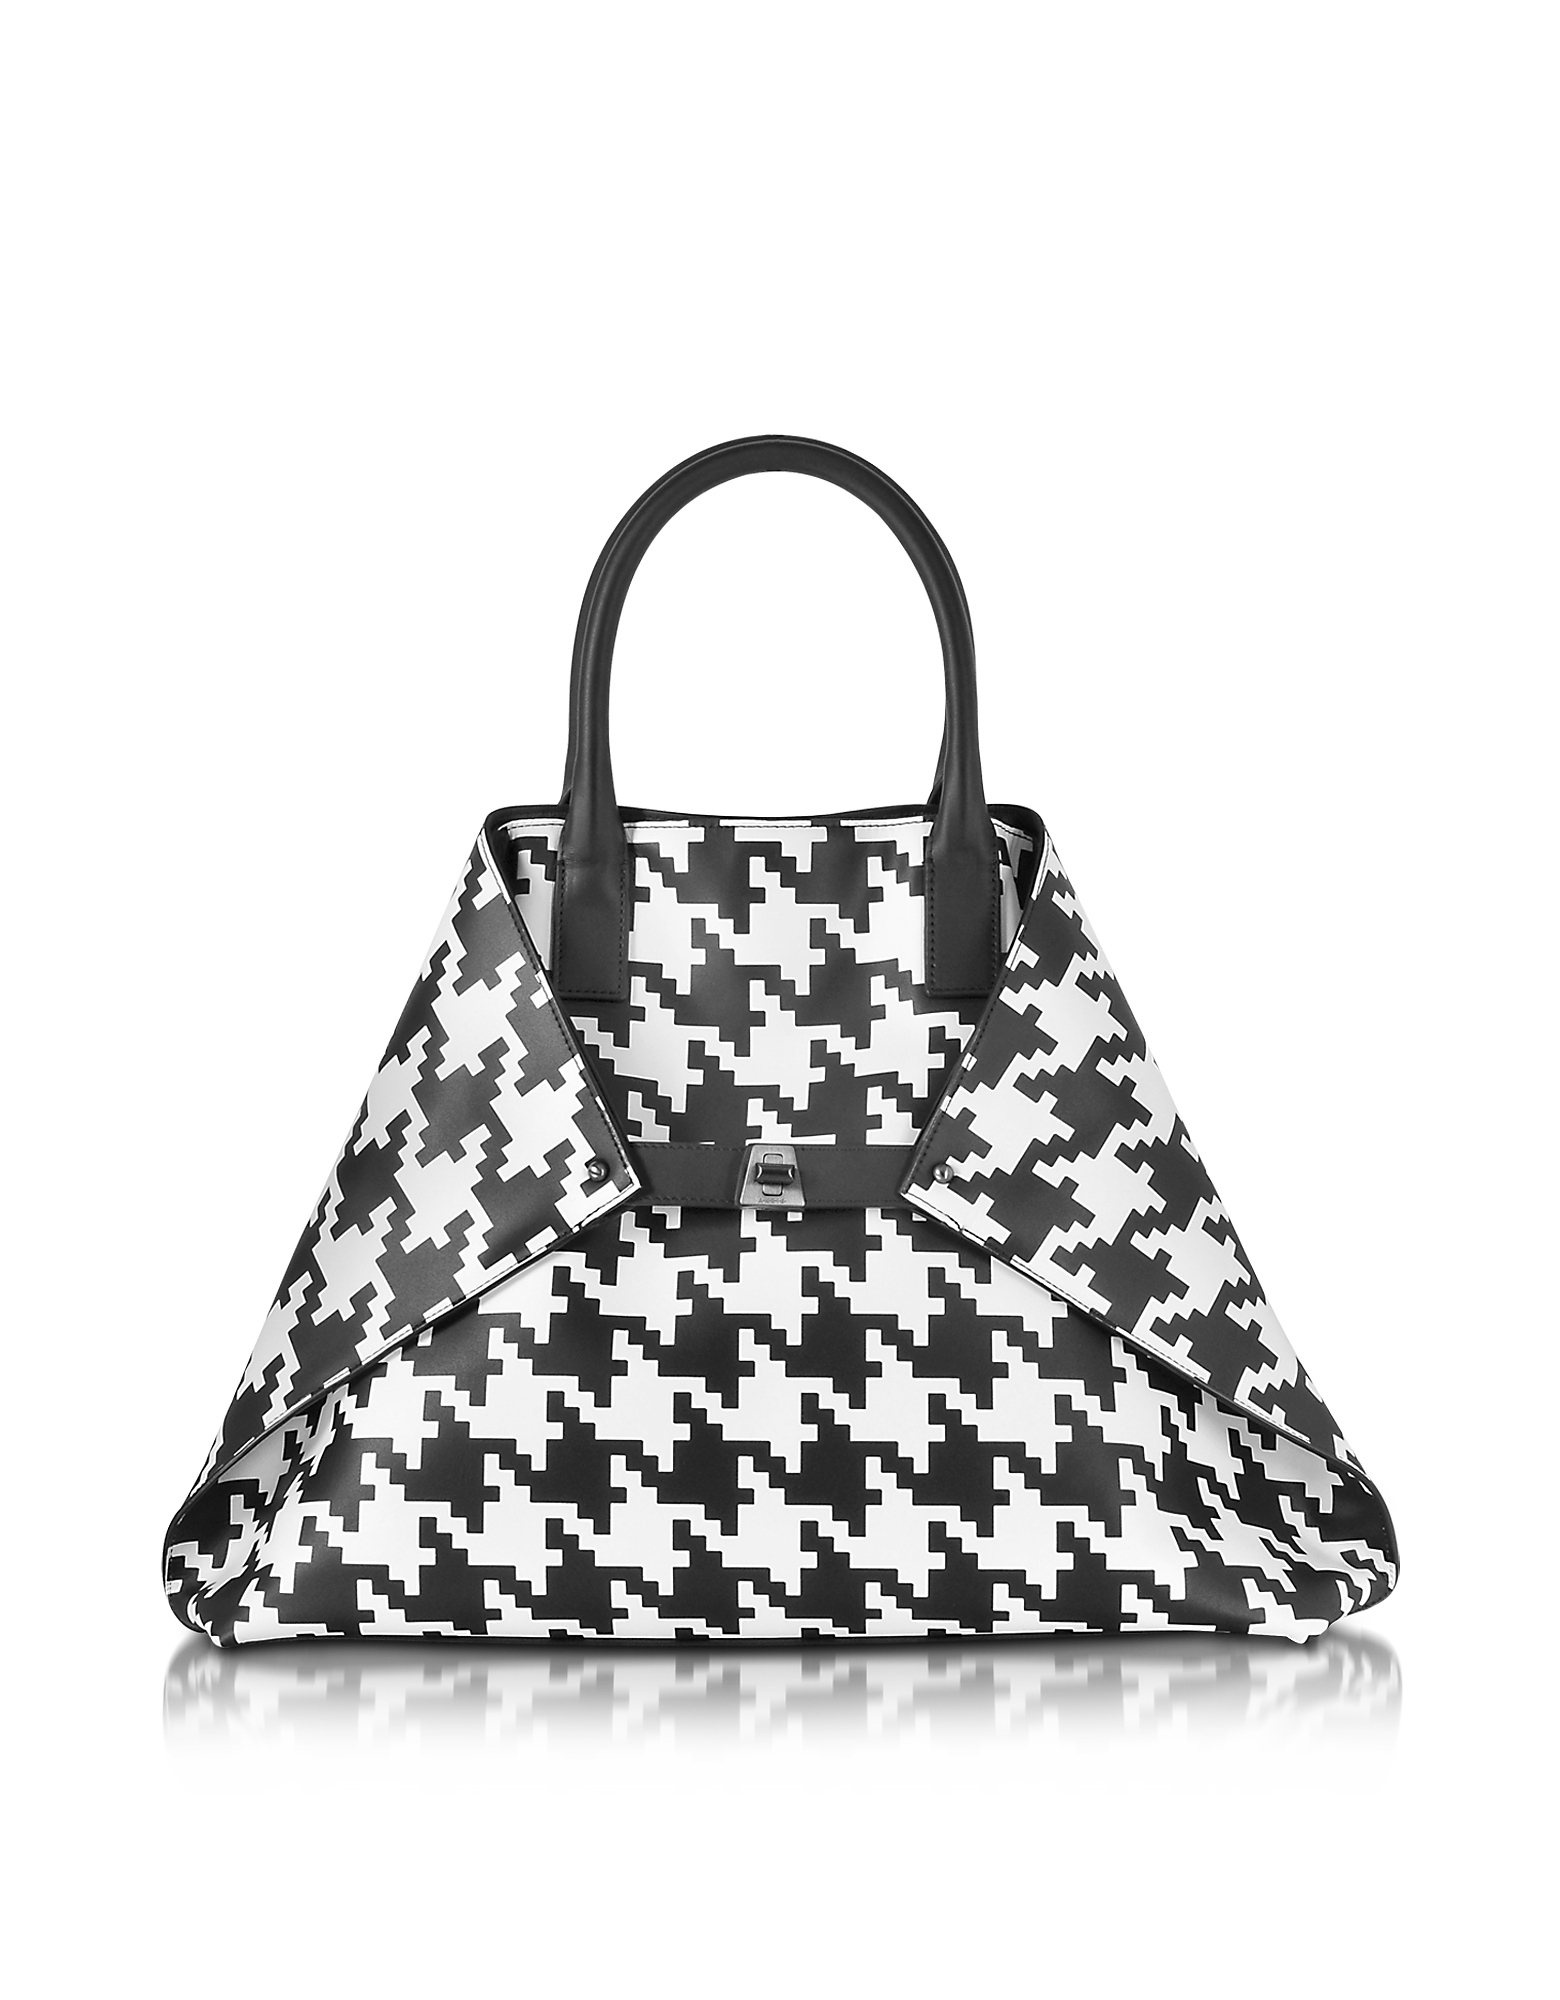 Akris Handbags, Ai Medium Black and White Pied de Poule Printed Leather Tote Bag